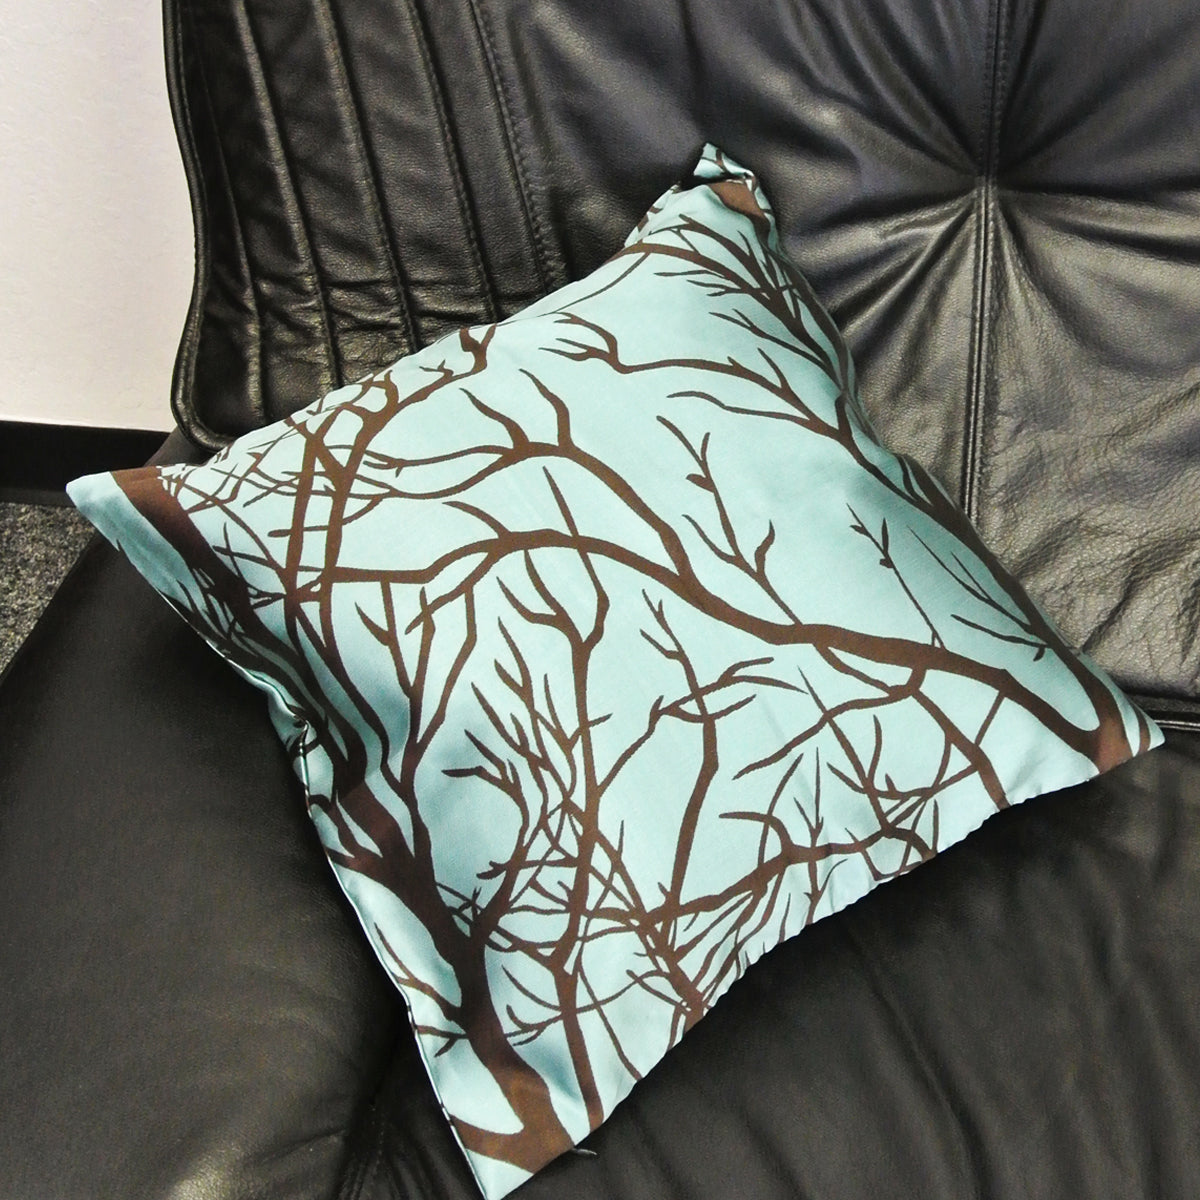 Kella Milla Contemporary Woodlands Throw Pillow Cover